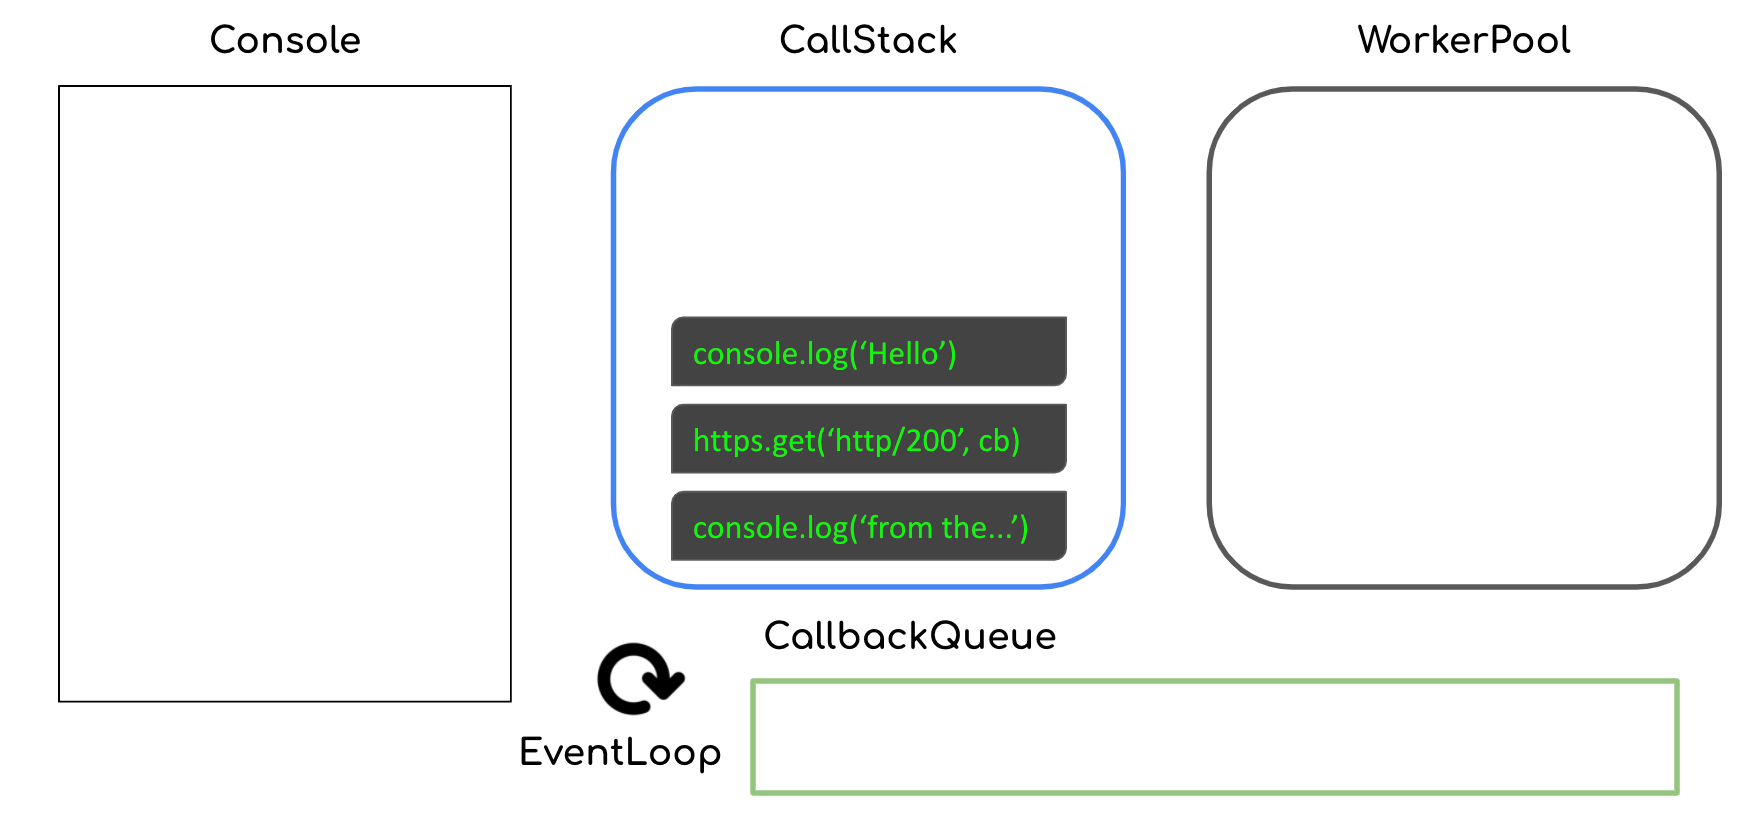 Processing starts with 3 functions in the call stack